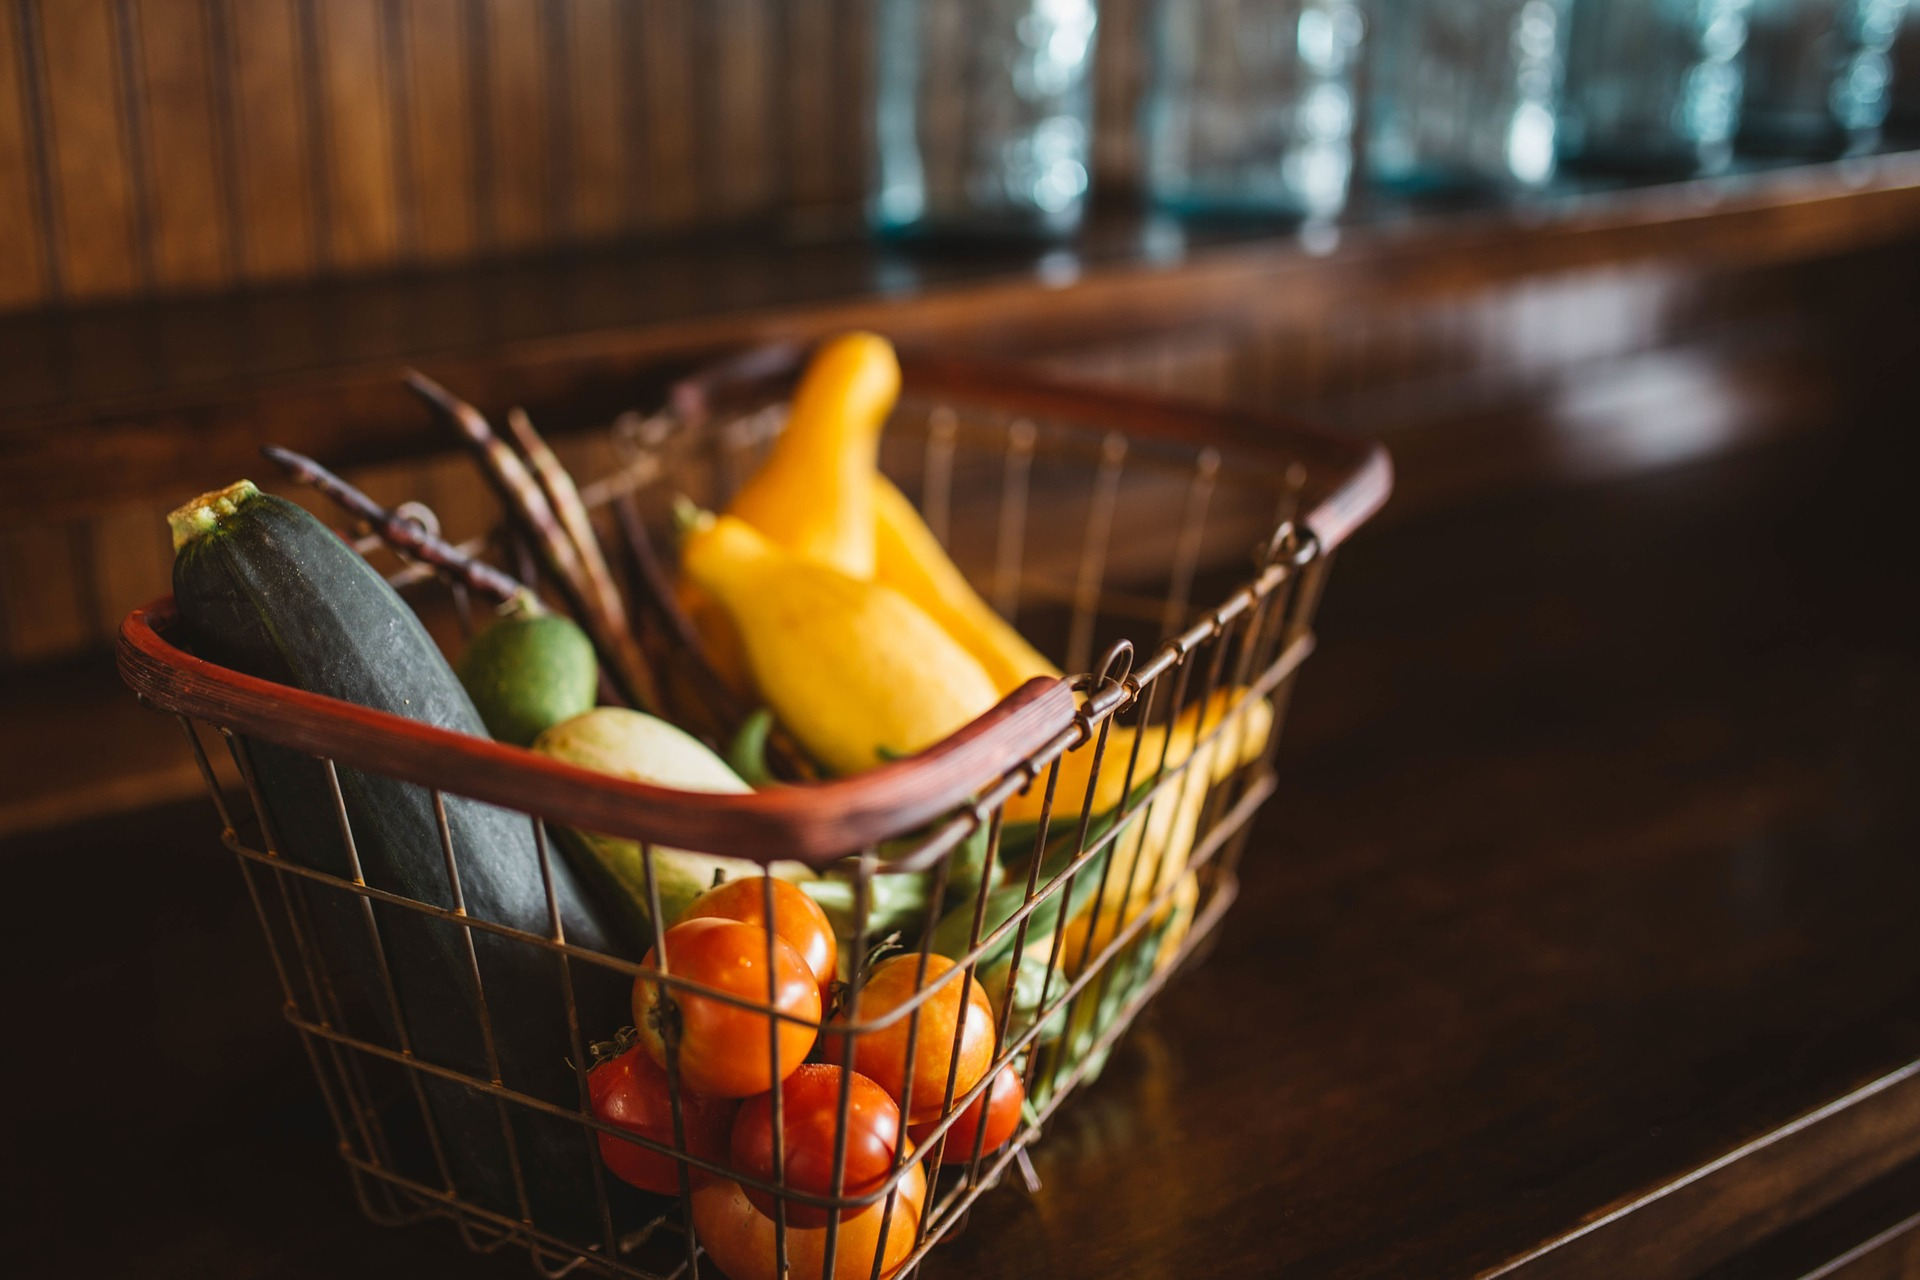 Organizations donate produce to families in need.